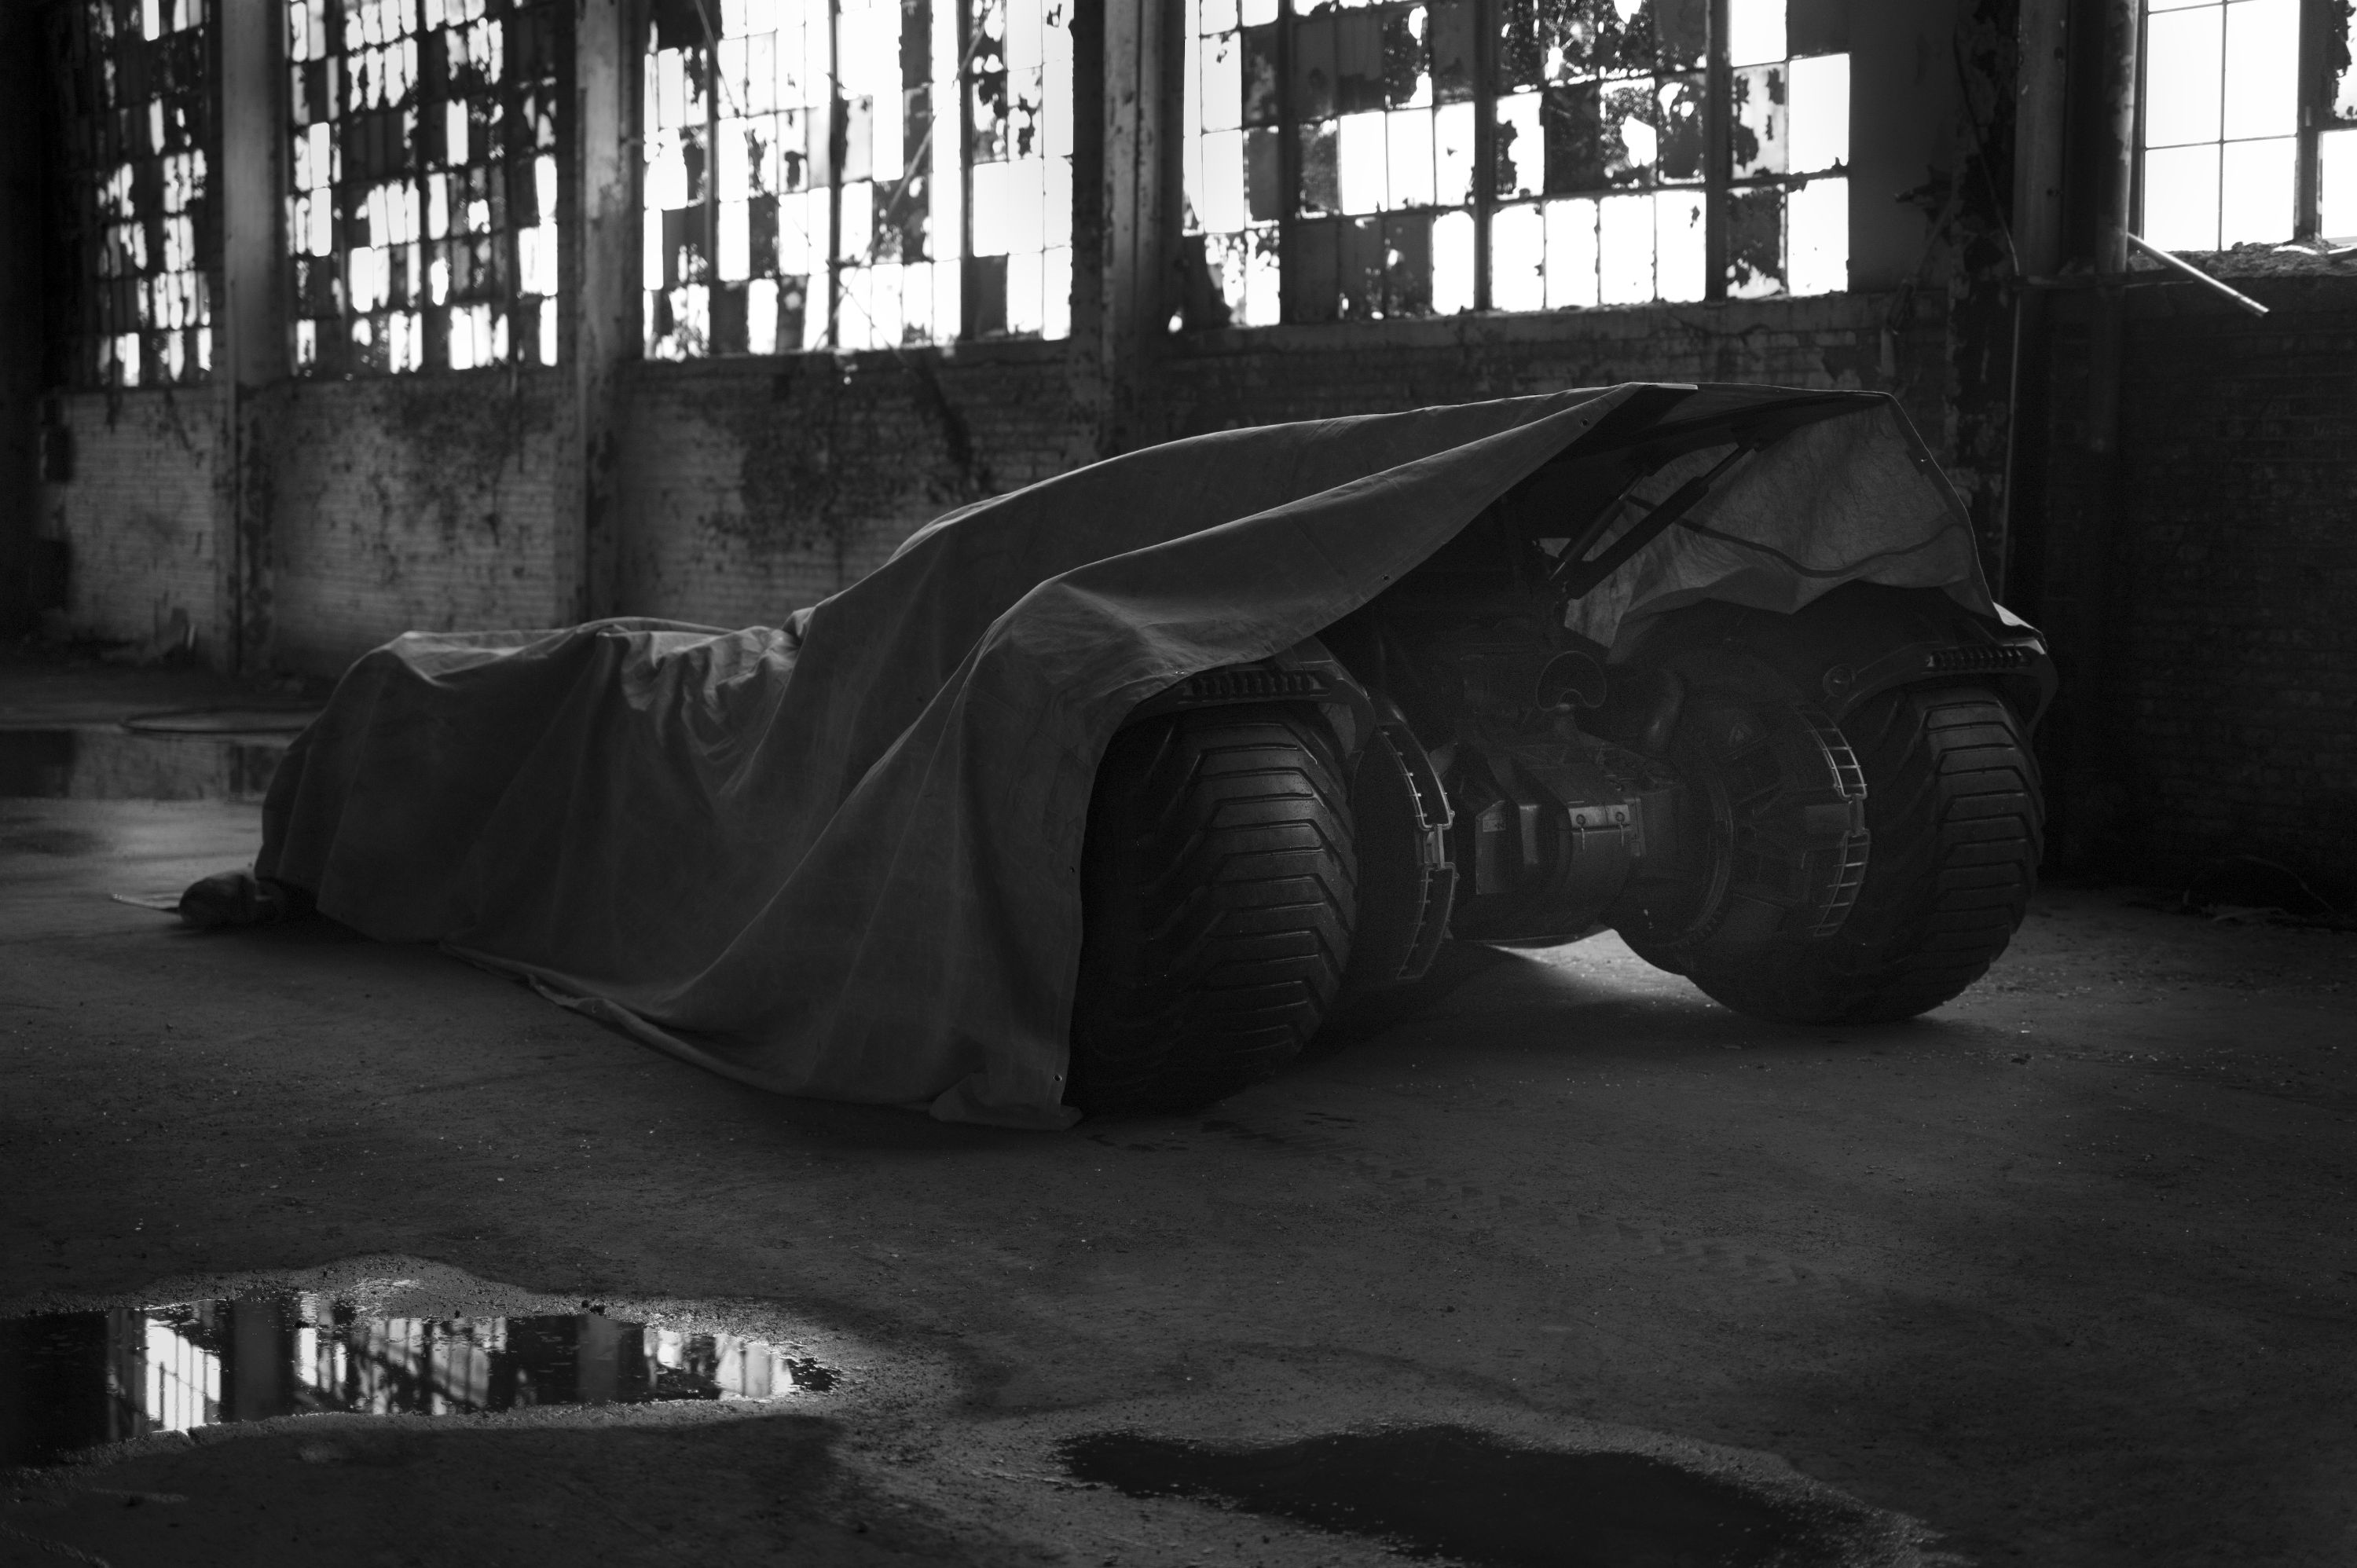 Batmobile - Man of Steel 2